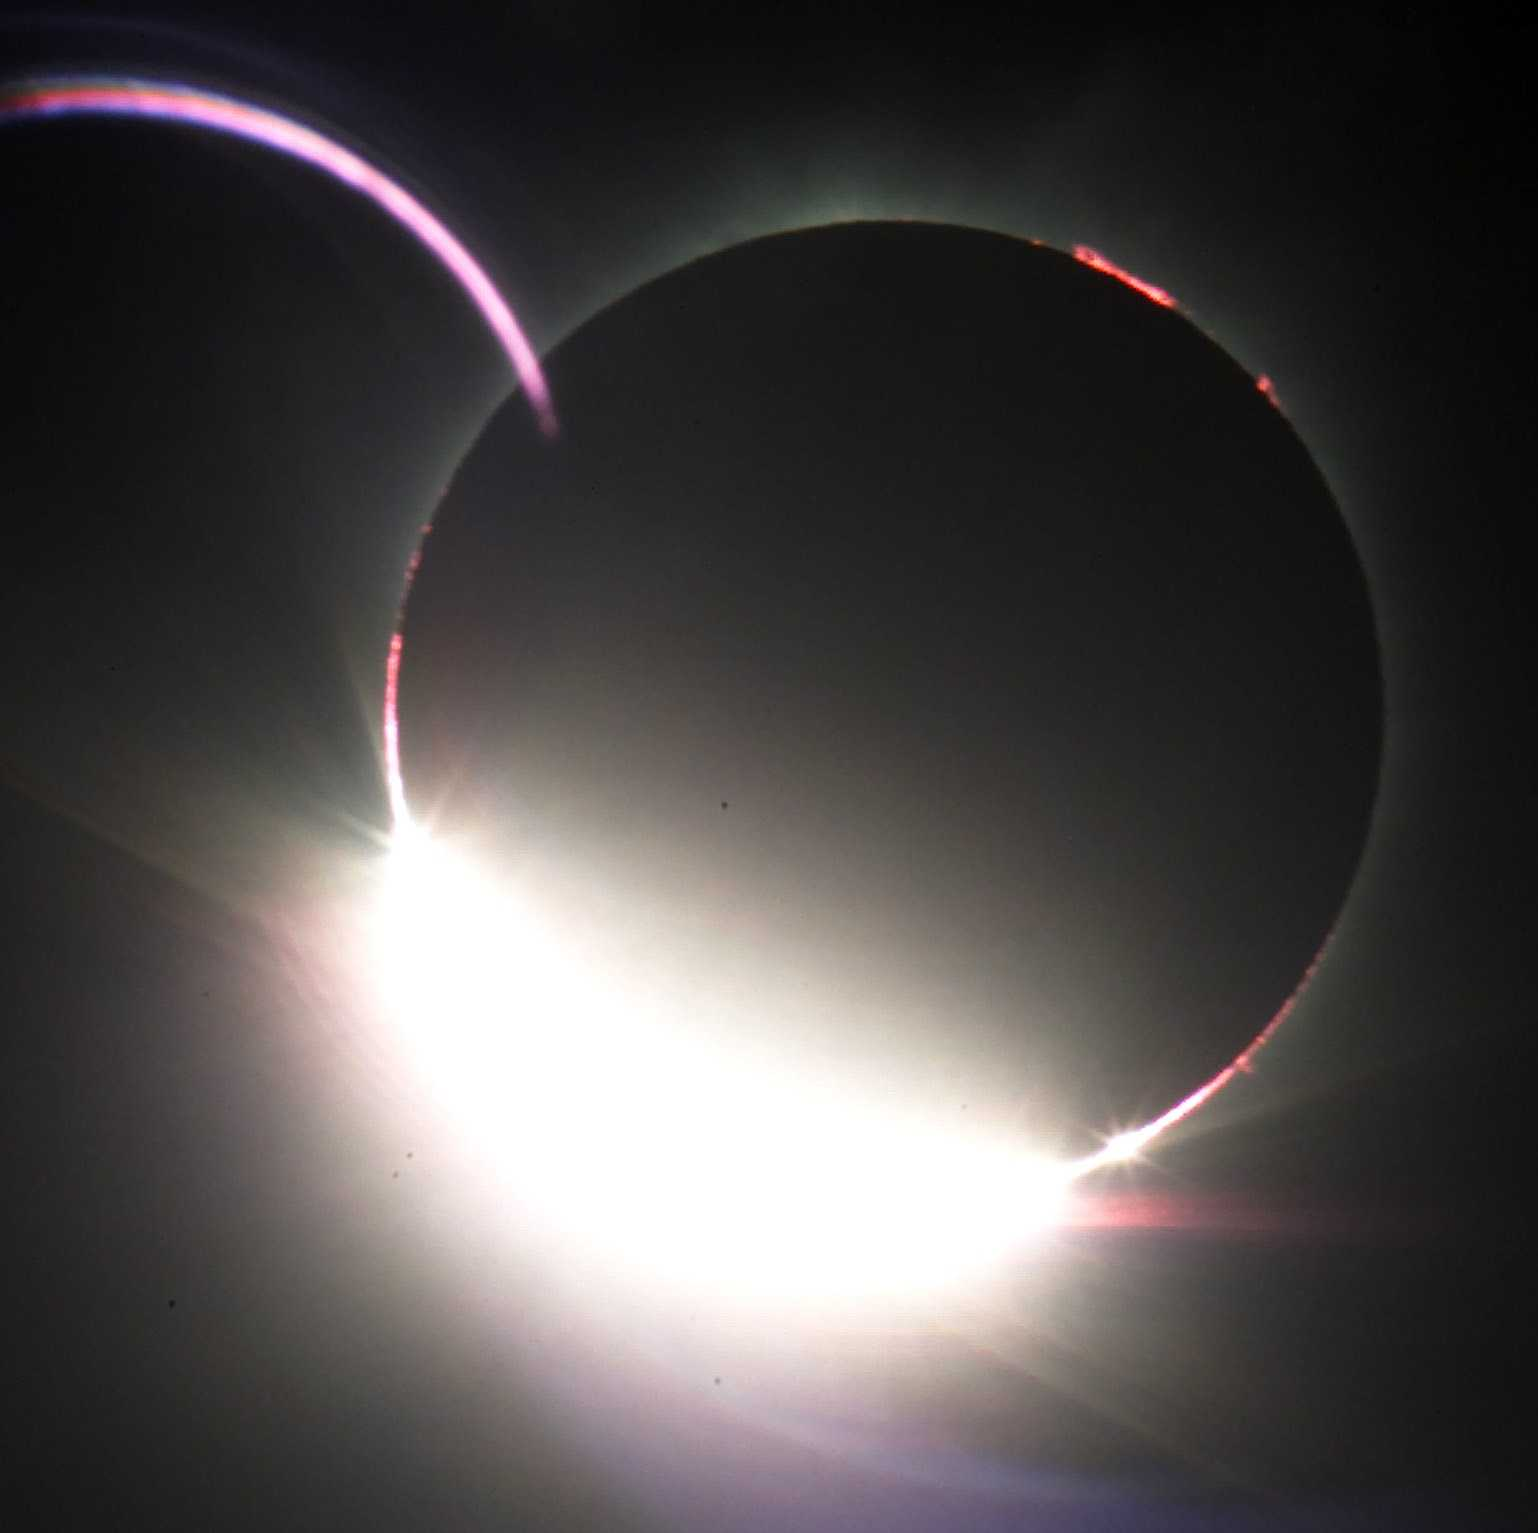 The Diamond Ring appears after the totality of the solar eclipse in Ceduna, South Australia on Dec. 4, 2002.